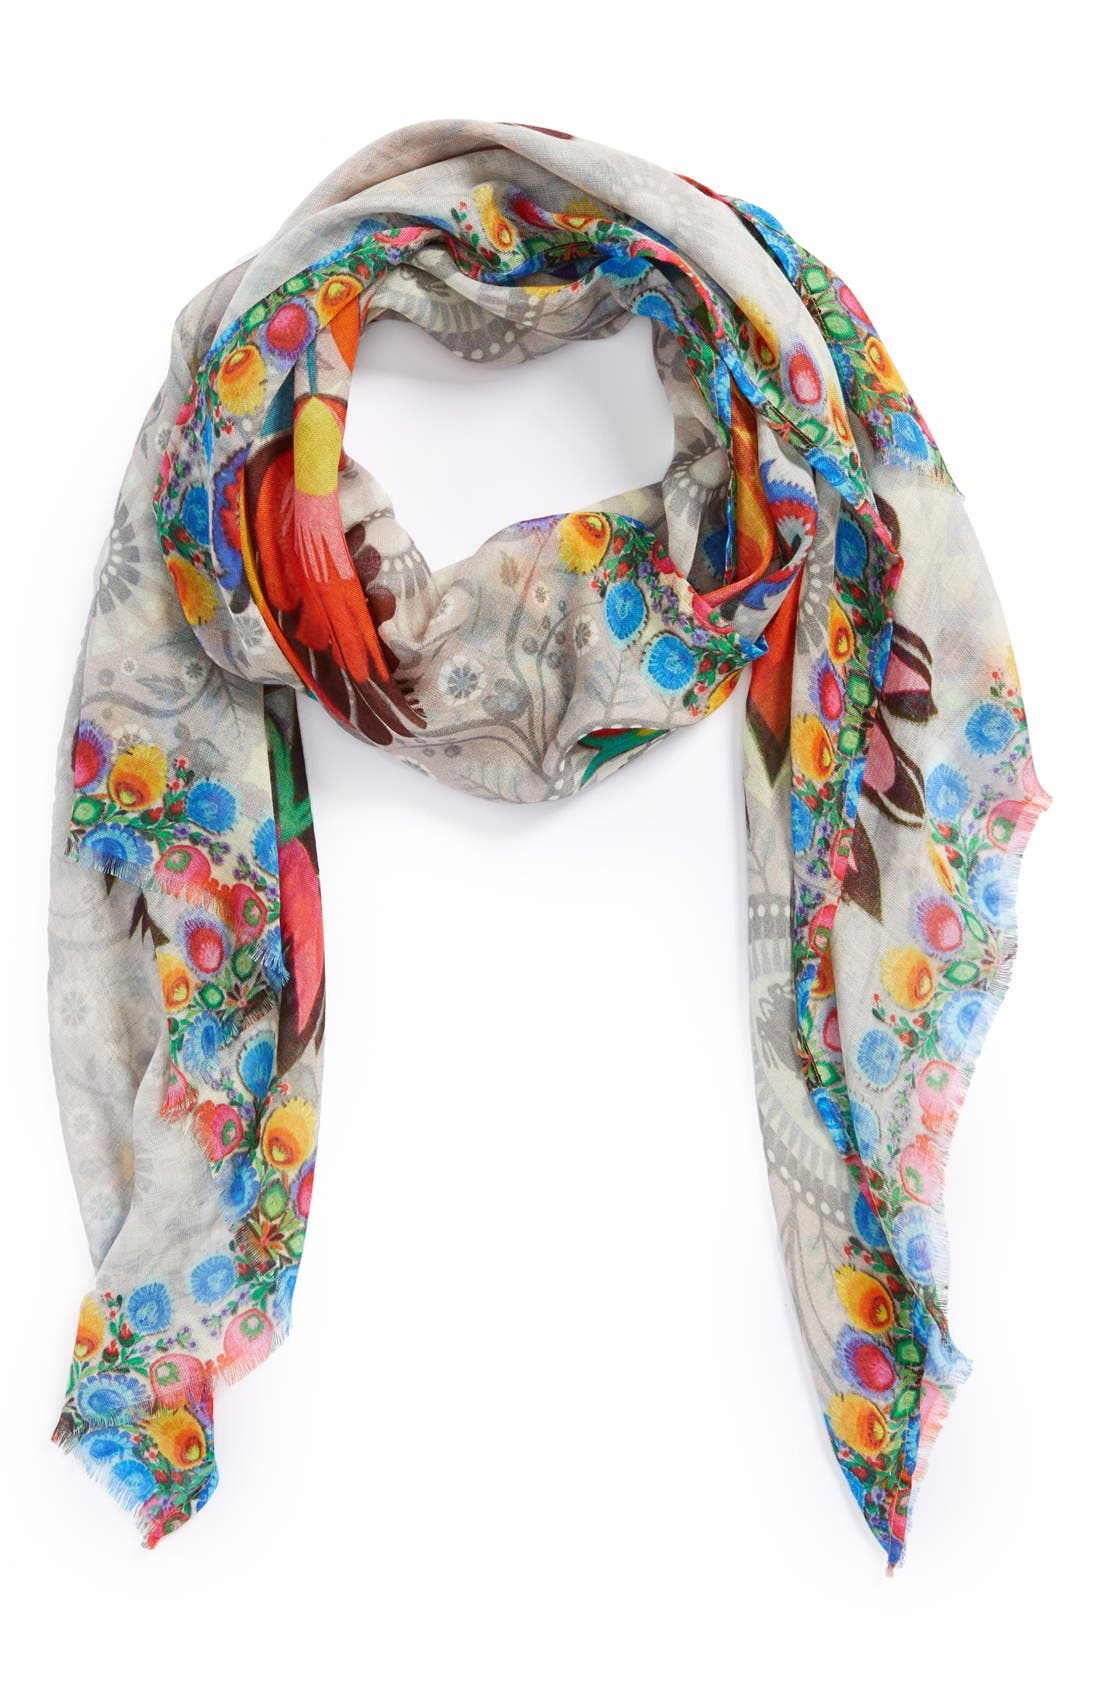 Alternate Image 1 Selected - Vismaya 'Banana Milk' Print Scarf